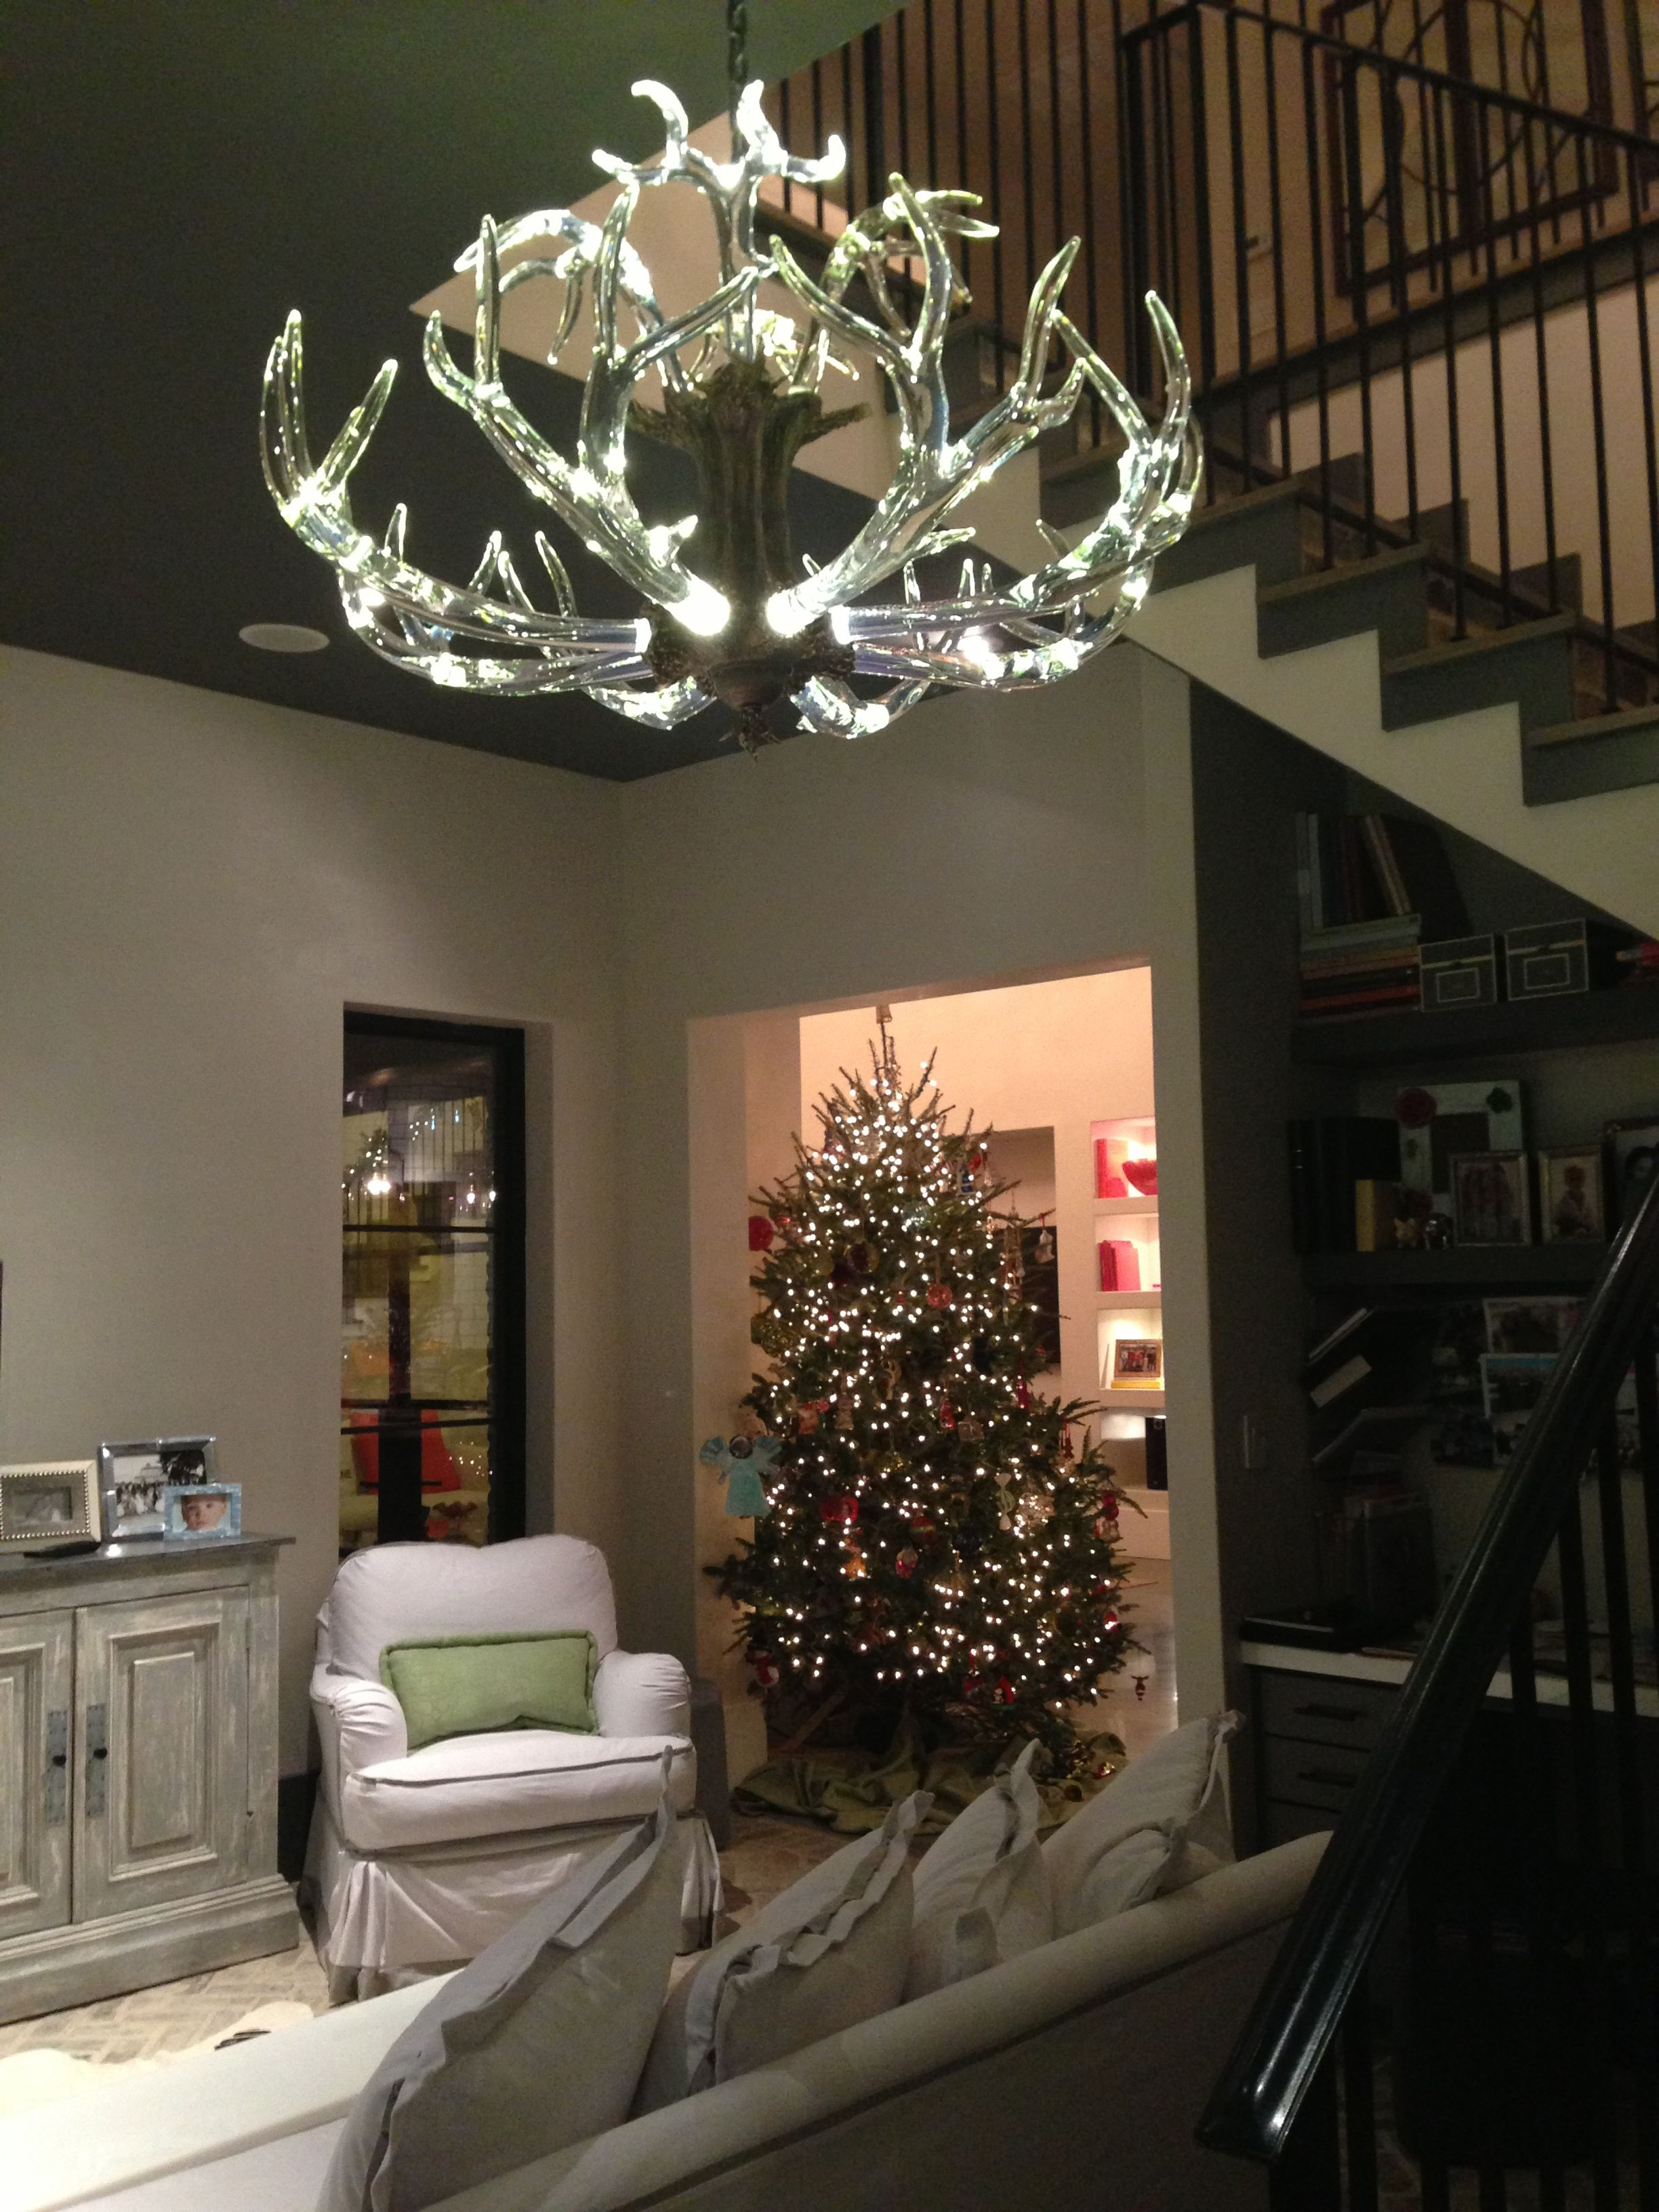 Best Christmas Gift Ever The Crystal Antler Chandelier By